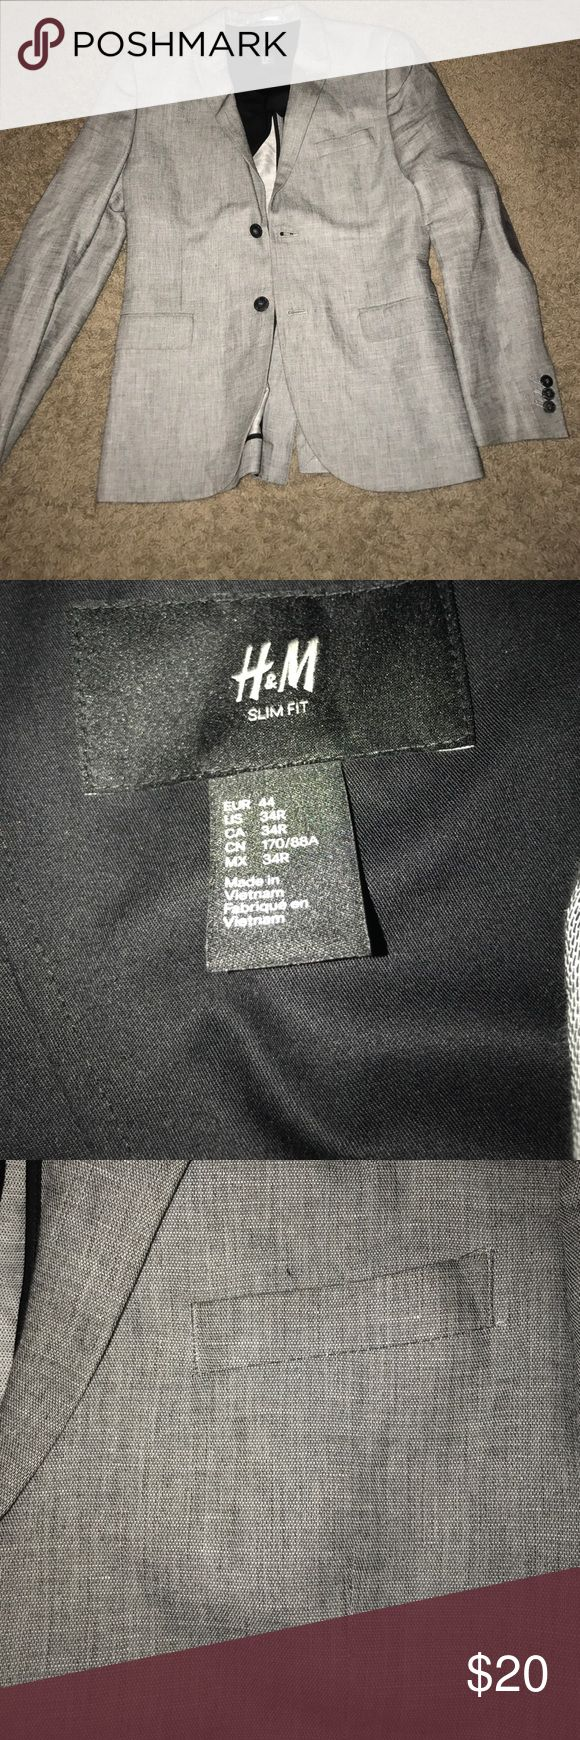 Mens H&M Slim Fit Blazer Worn to a few occasions but still in GREAT shape H&M Suits & Blazers Sport Coats & Blazers